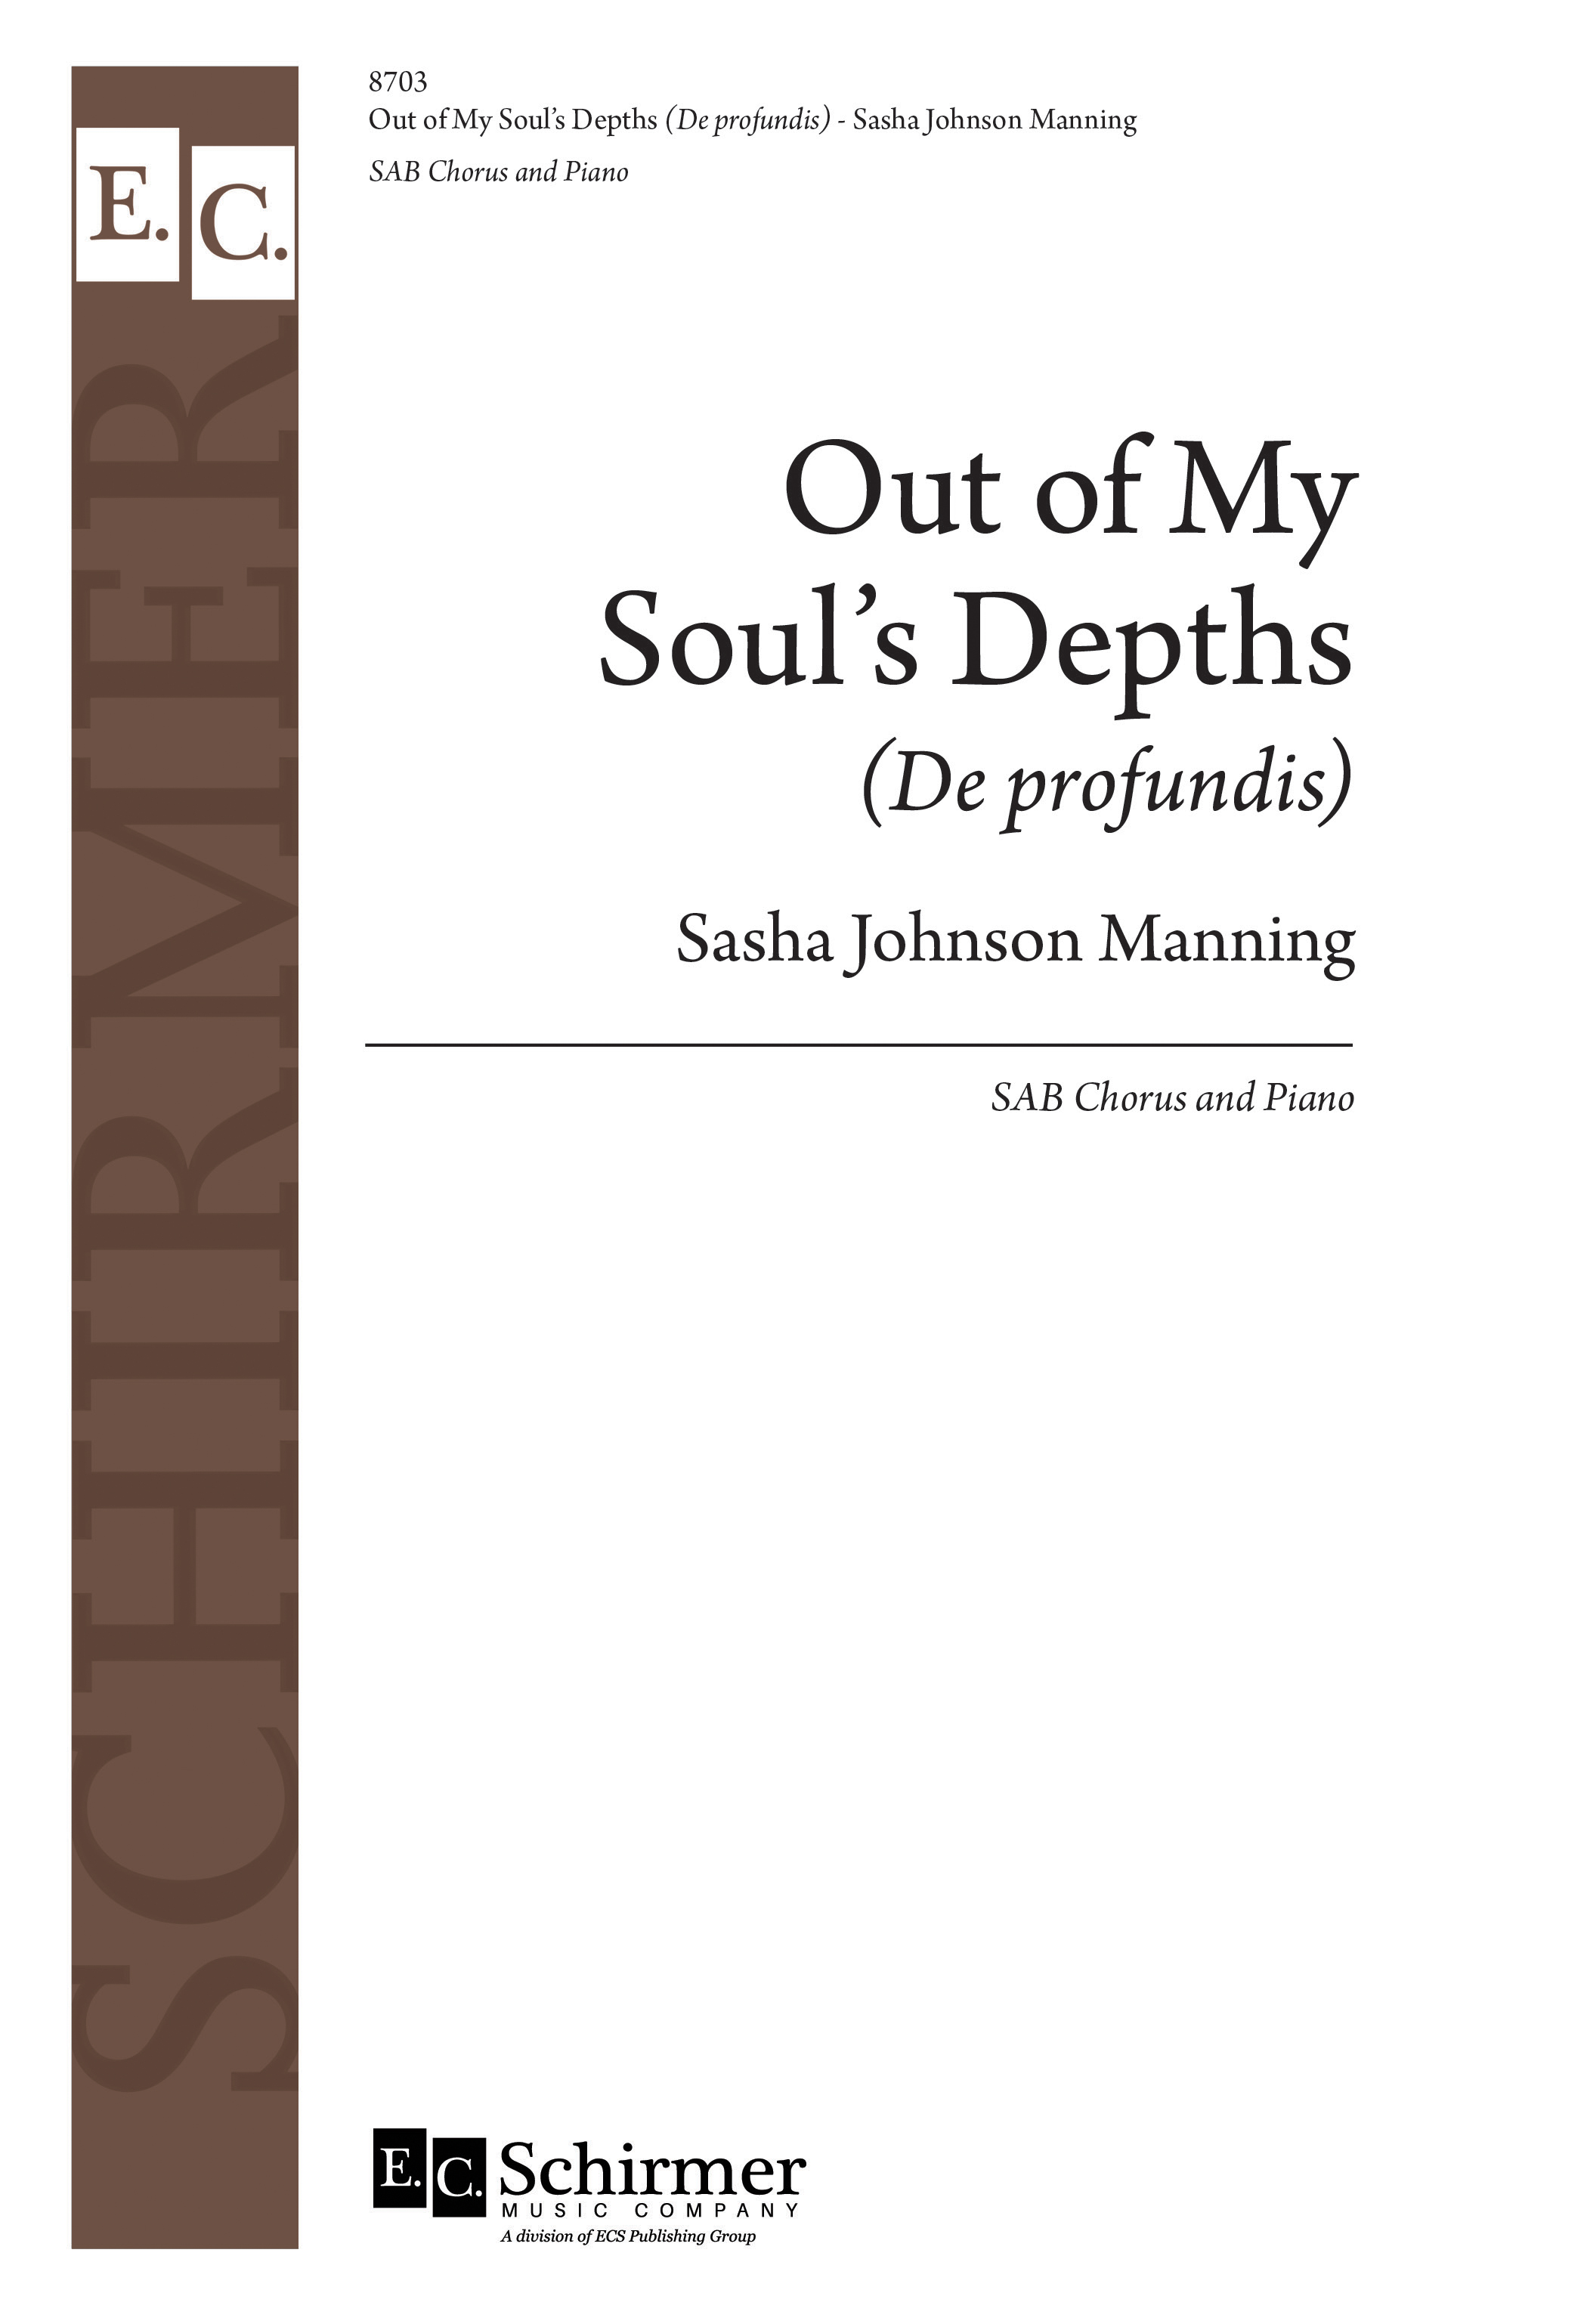 Out of My Soul's Depths